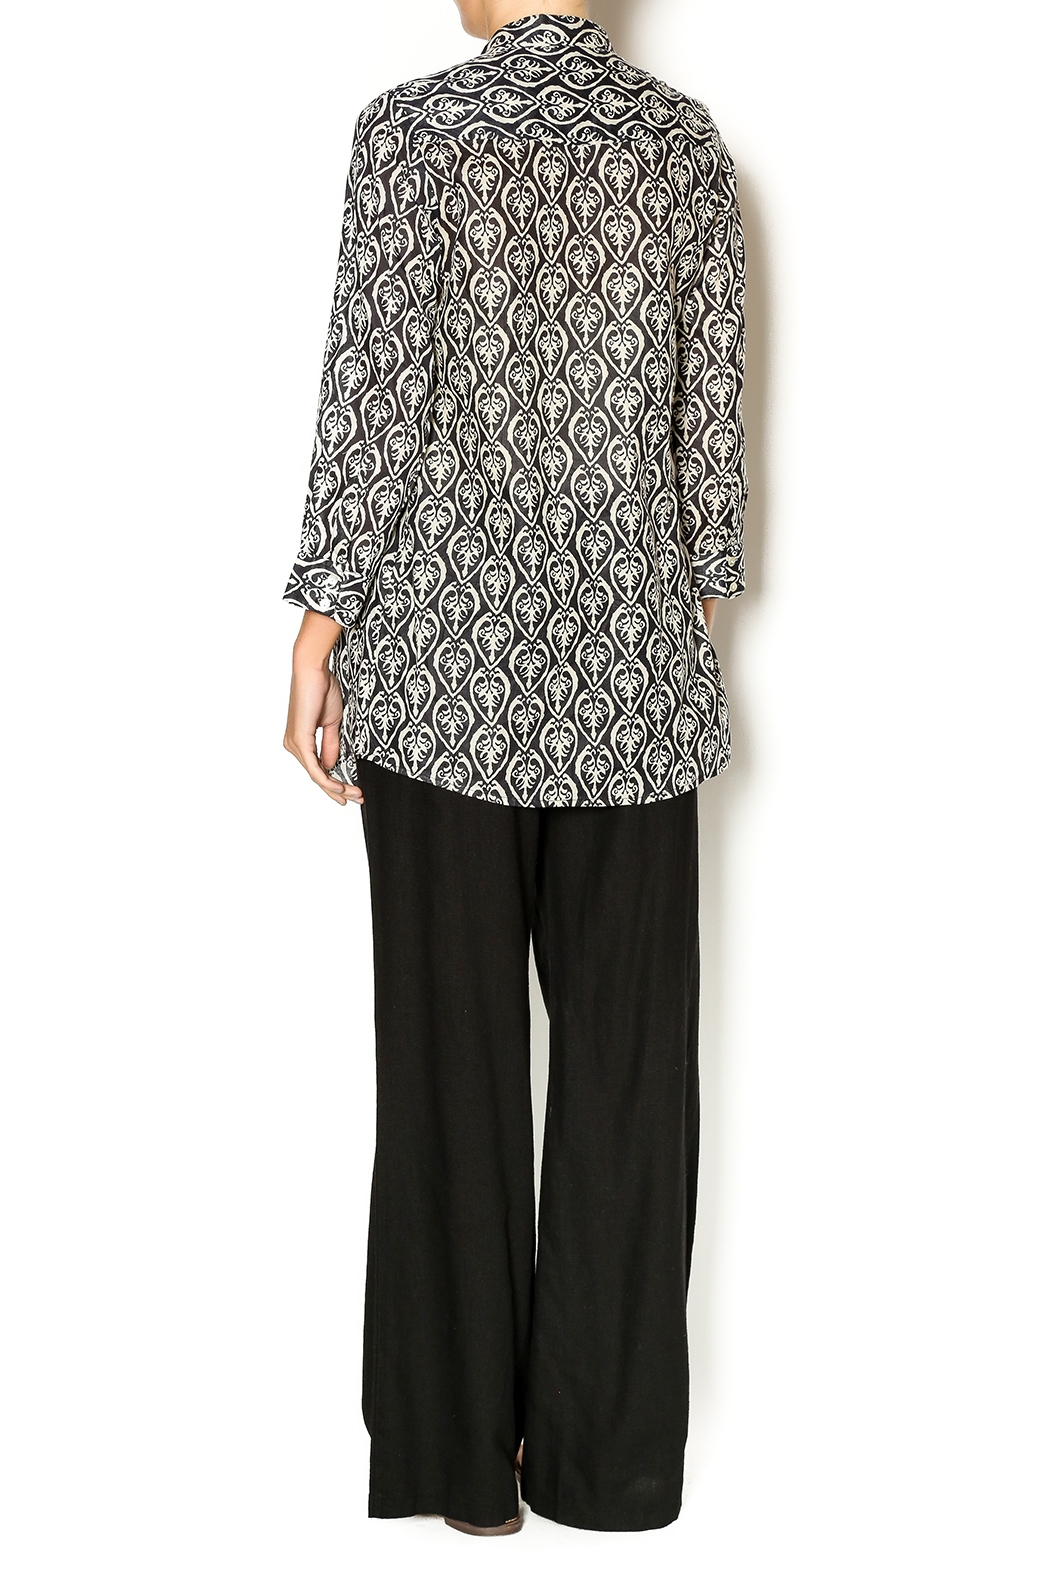 rock flower paper pintuck cotton tunic from dallas by